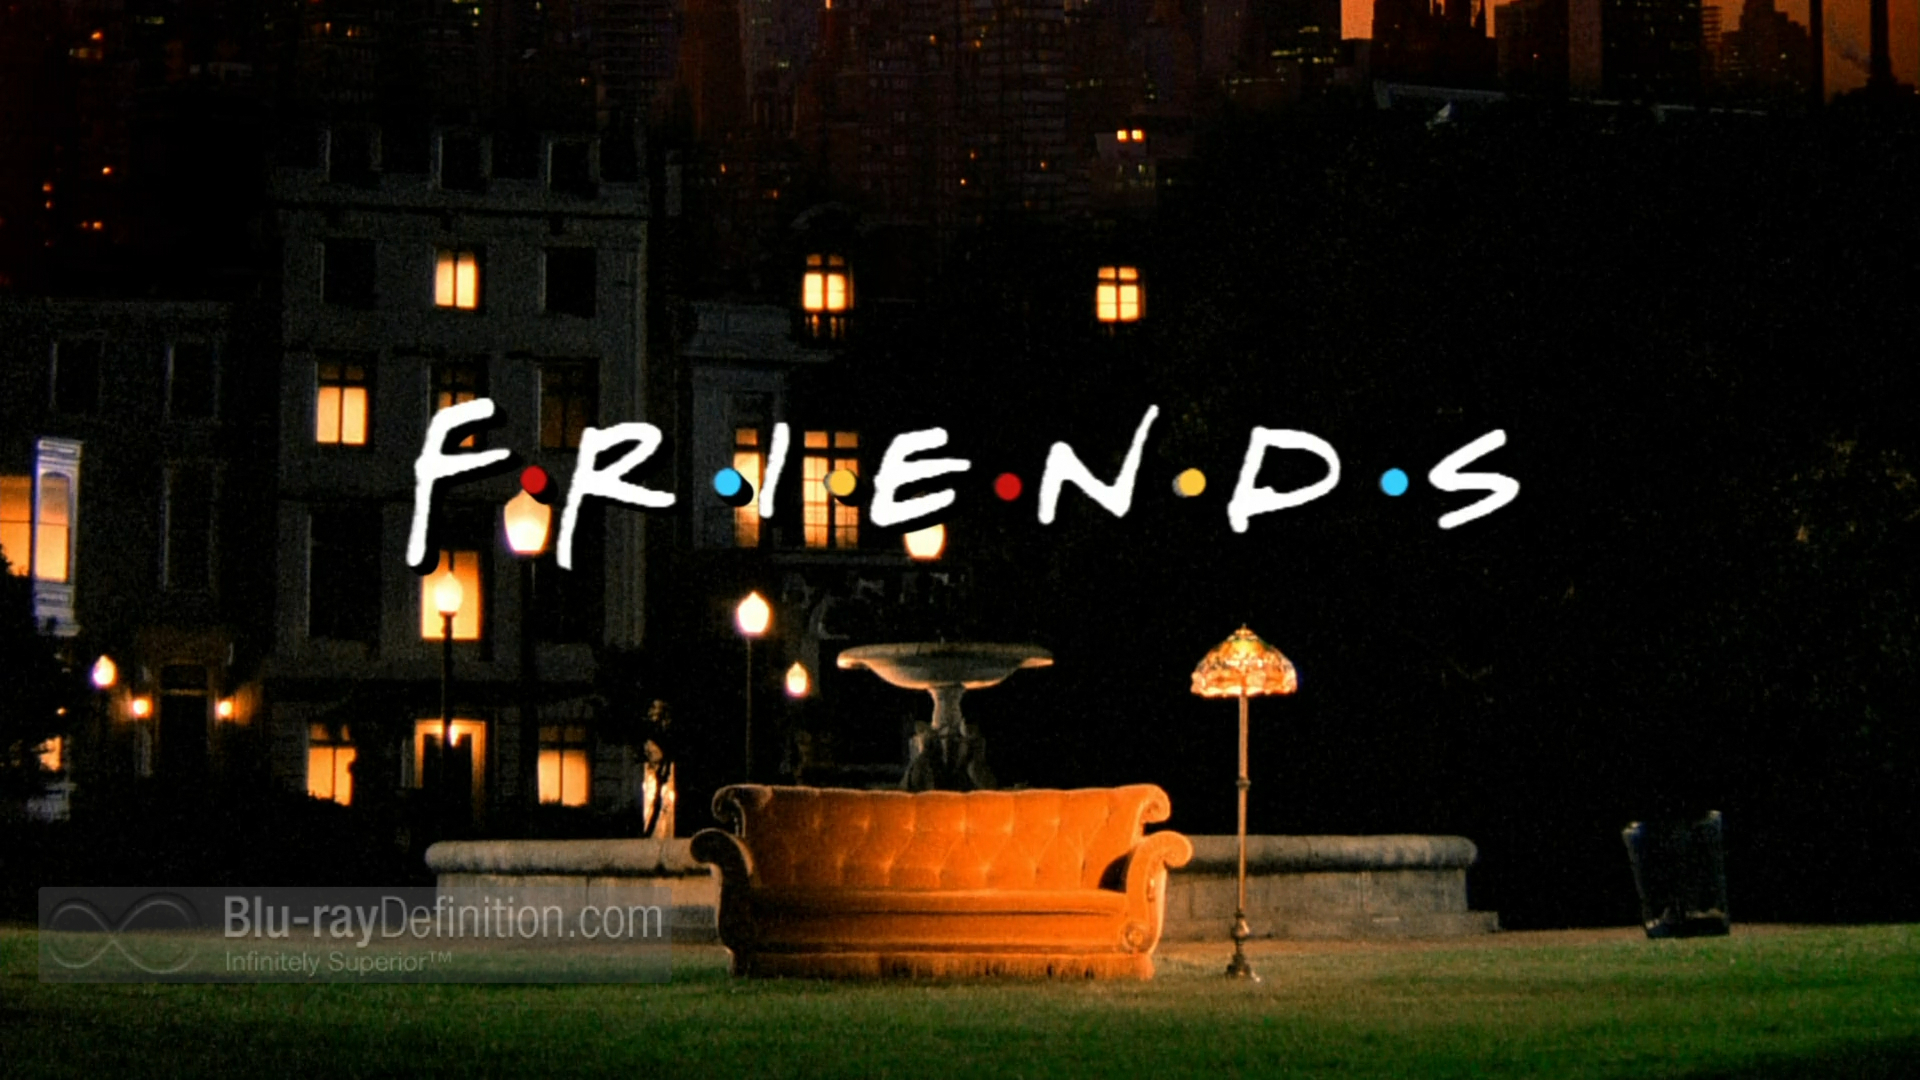 Back Gallery For Show Friends Wallpaper 1920x1080